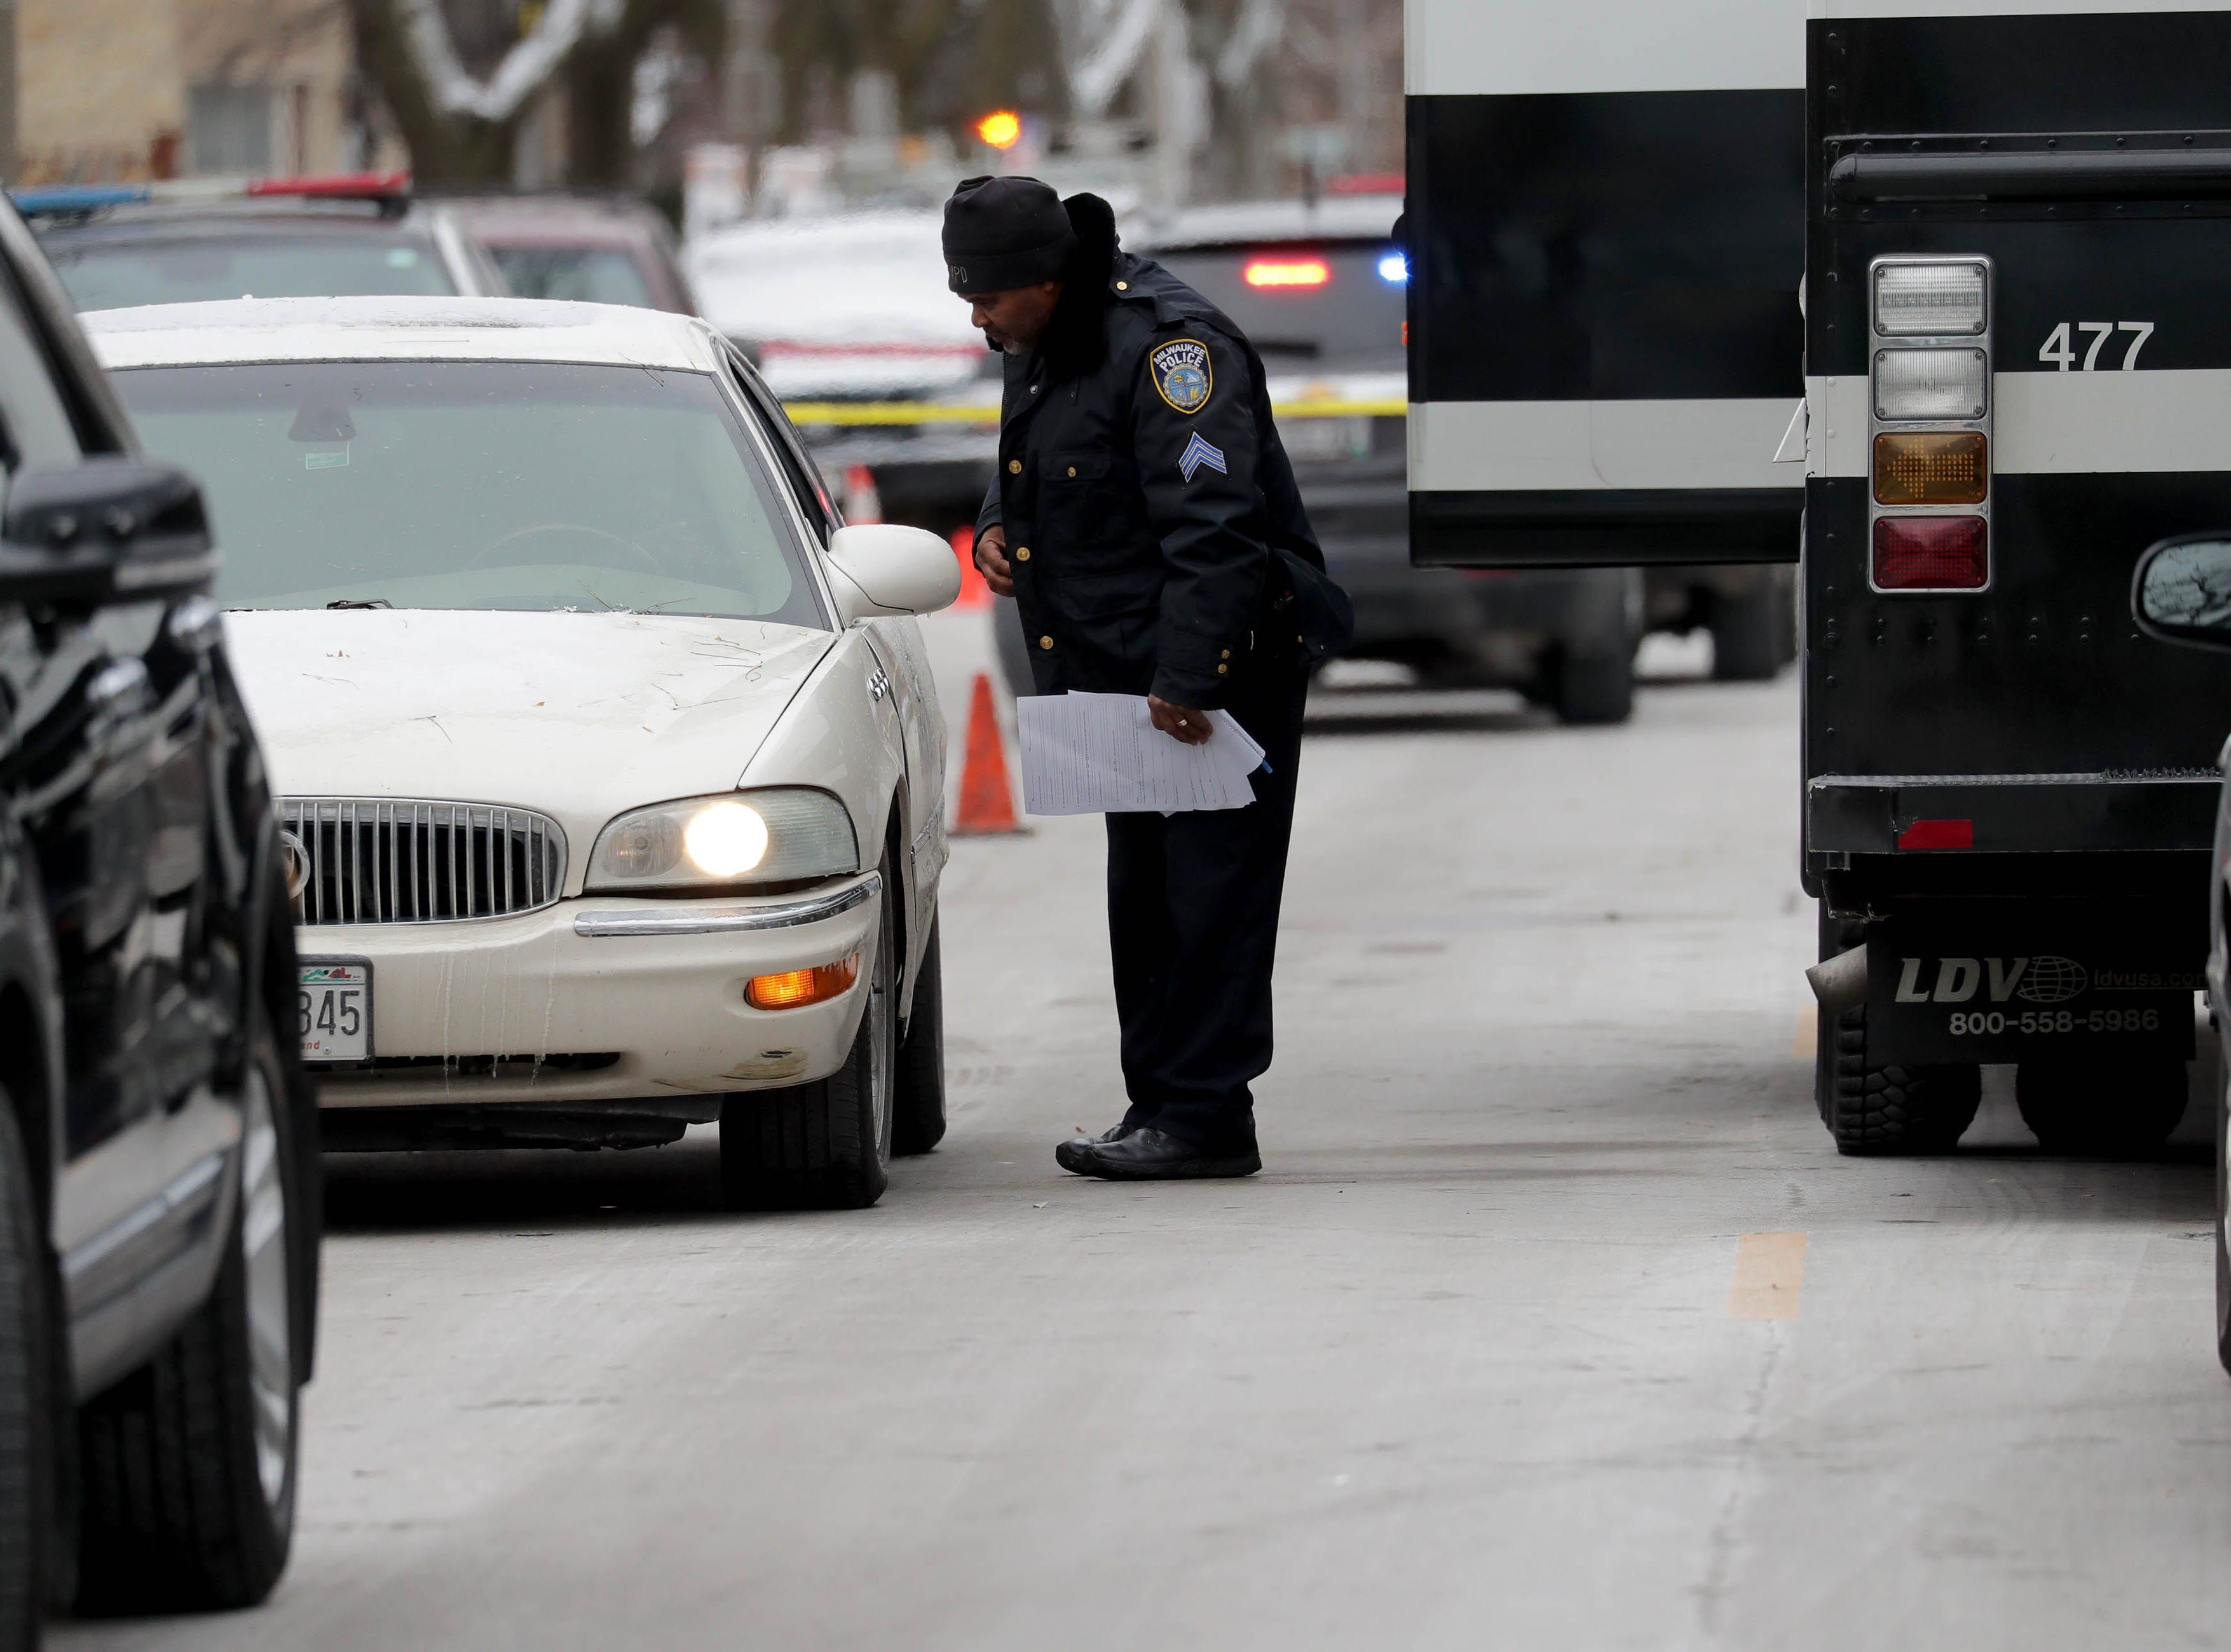 A Milwaukee police officer talks to a motorist while investigating the scene of what is believed to be an officer-involved shooting.